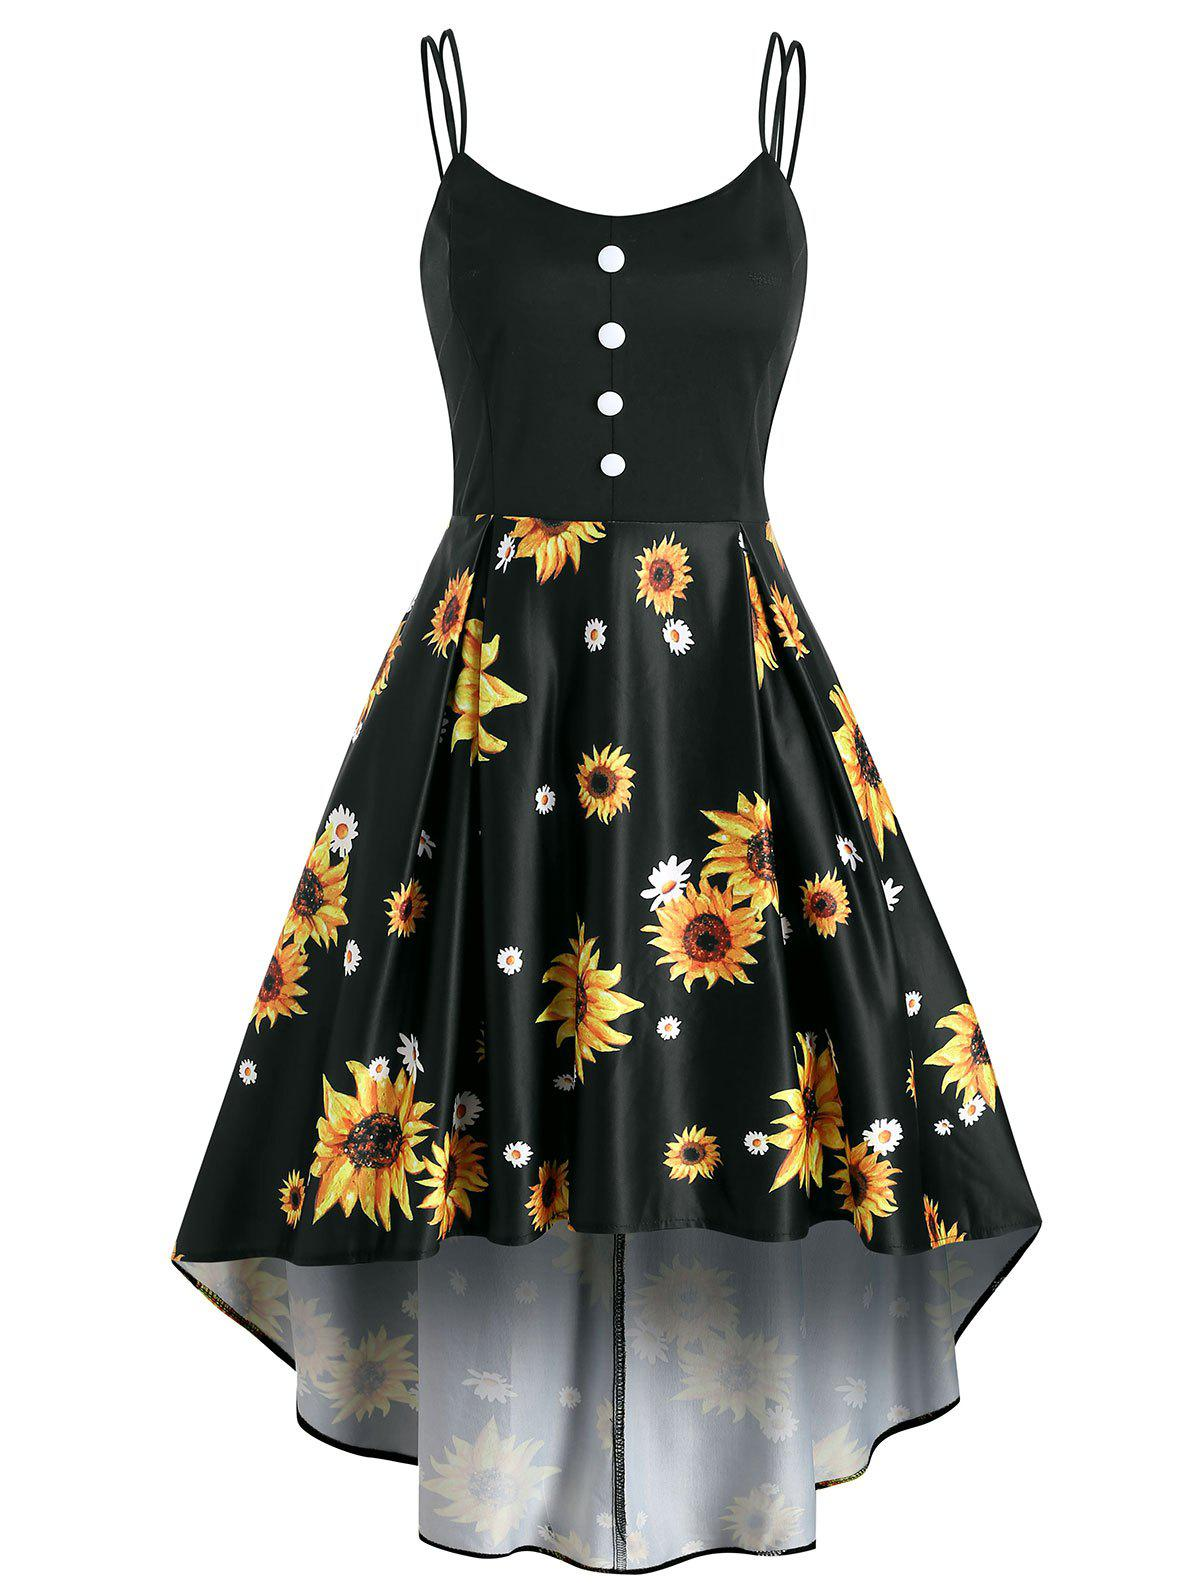 Mock Button Sunflower Print High Low Dress - MIRROR BLACK XL